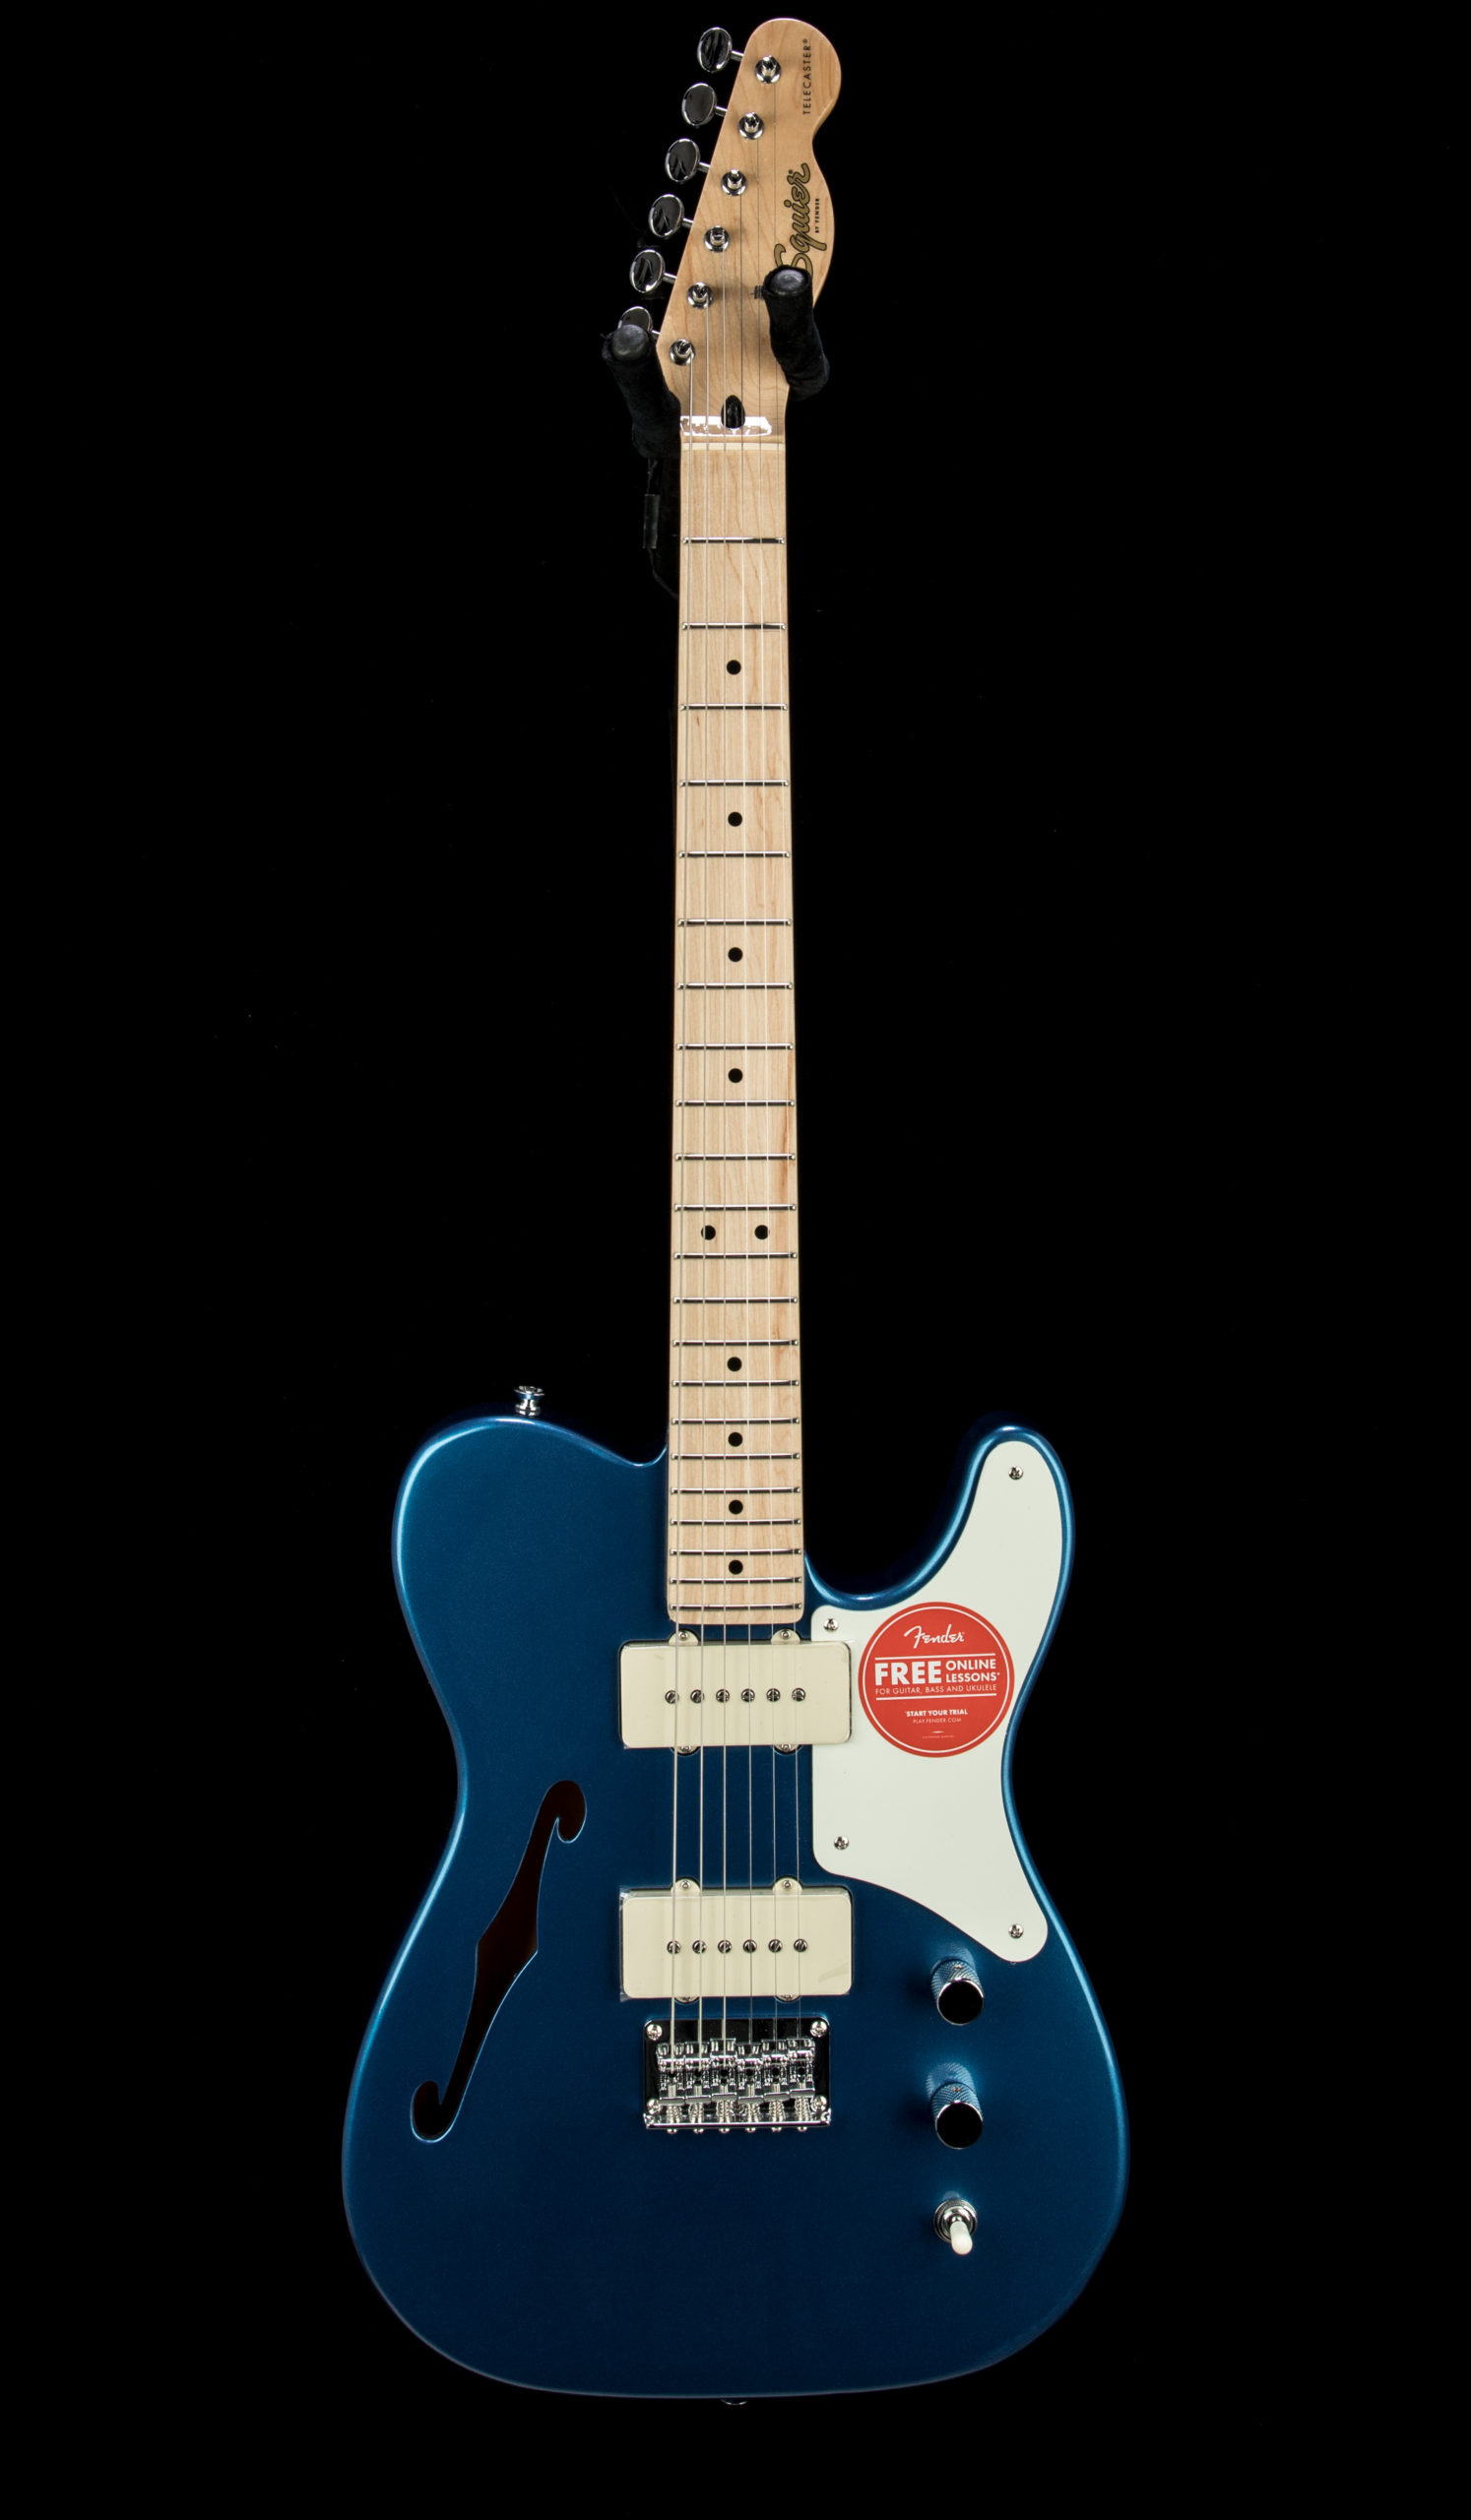 Squier Paranormal Cab Tele Thinline #CYKC21002435 Front